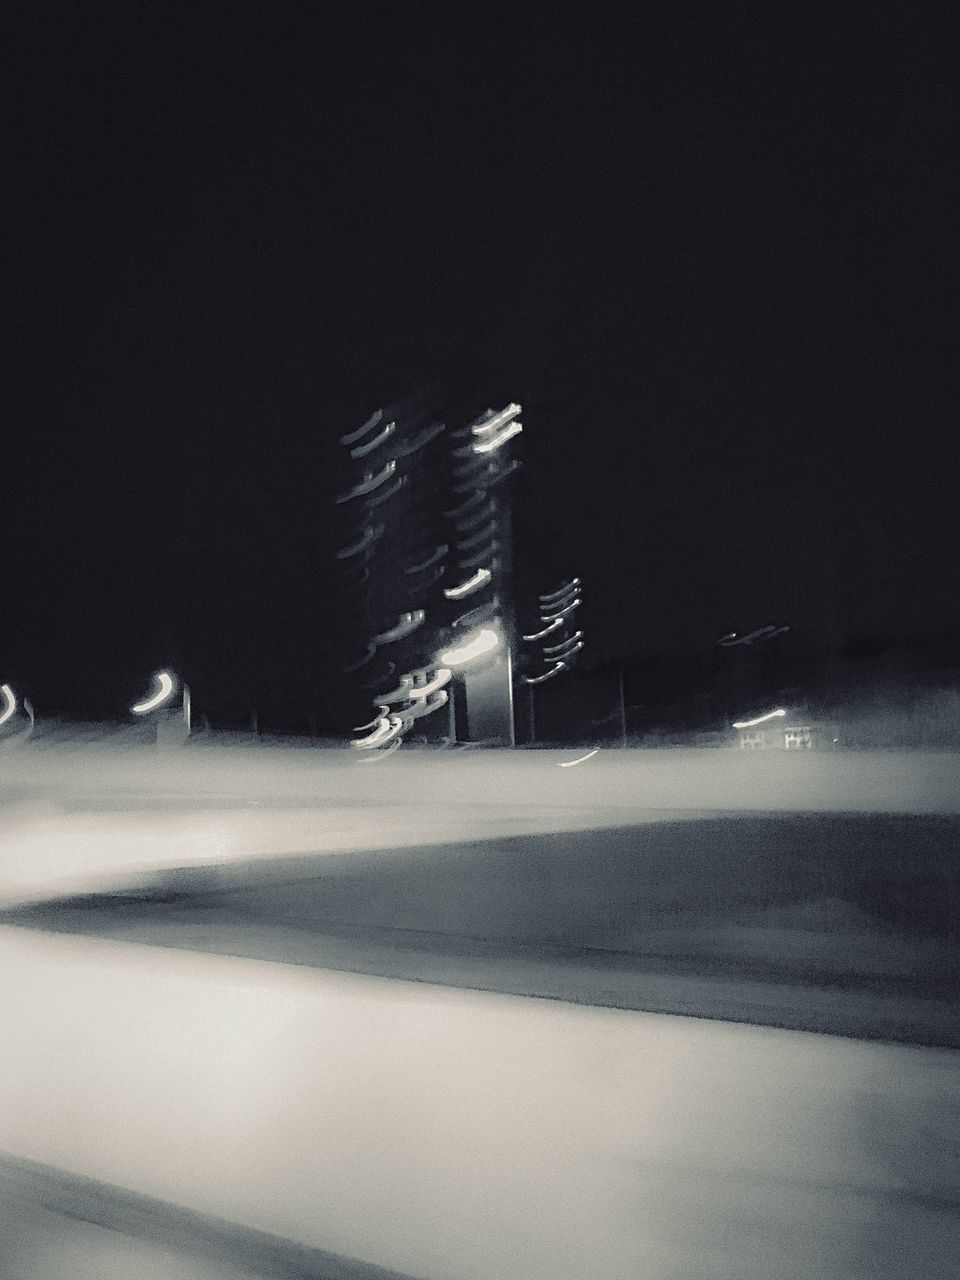 night, long exposure, motion, illuminated, speed, blurred motion, light trail, winter, outdoors, cold temperature, clear sky, no people, road, nature, snow, scenics, sky, city, high street, building exterior, architecture